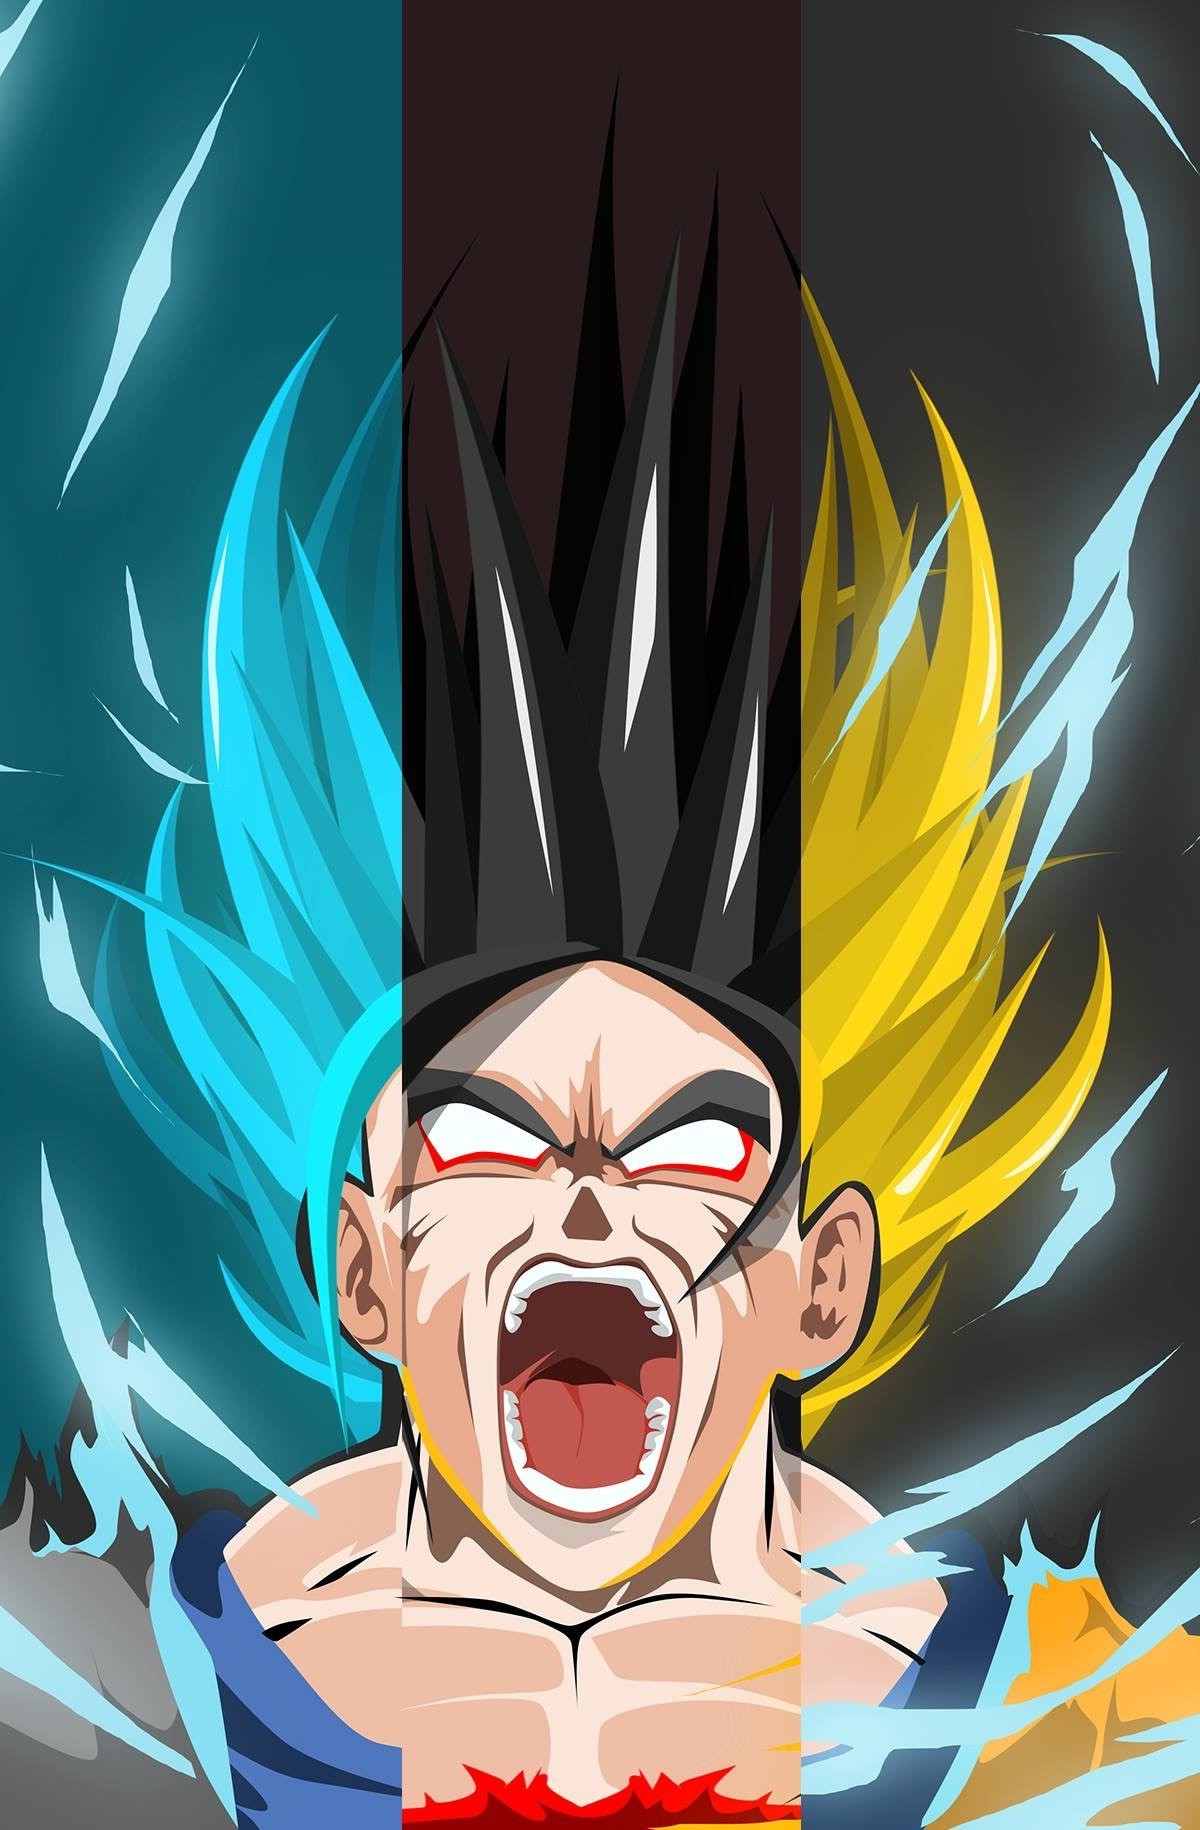 download dragon ball super saiyan god wallpapers picture is cool